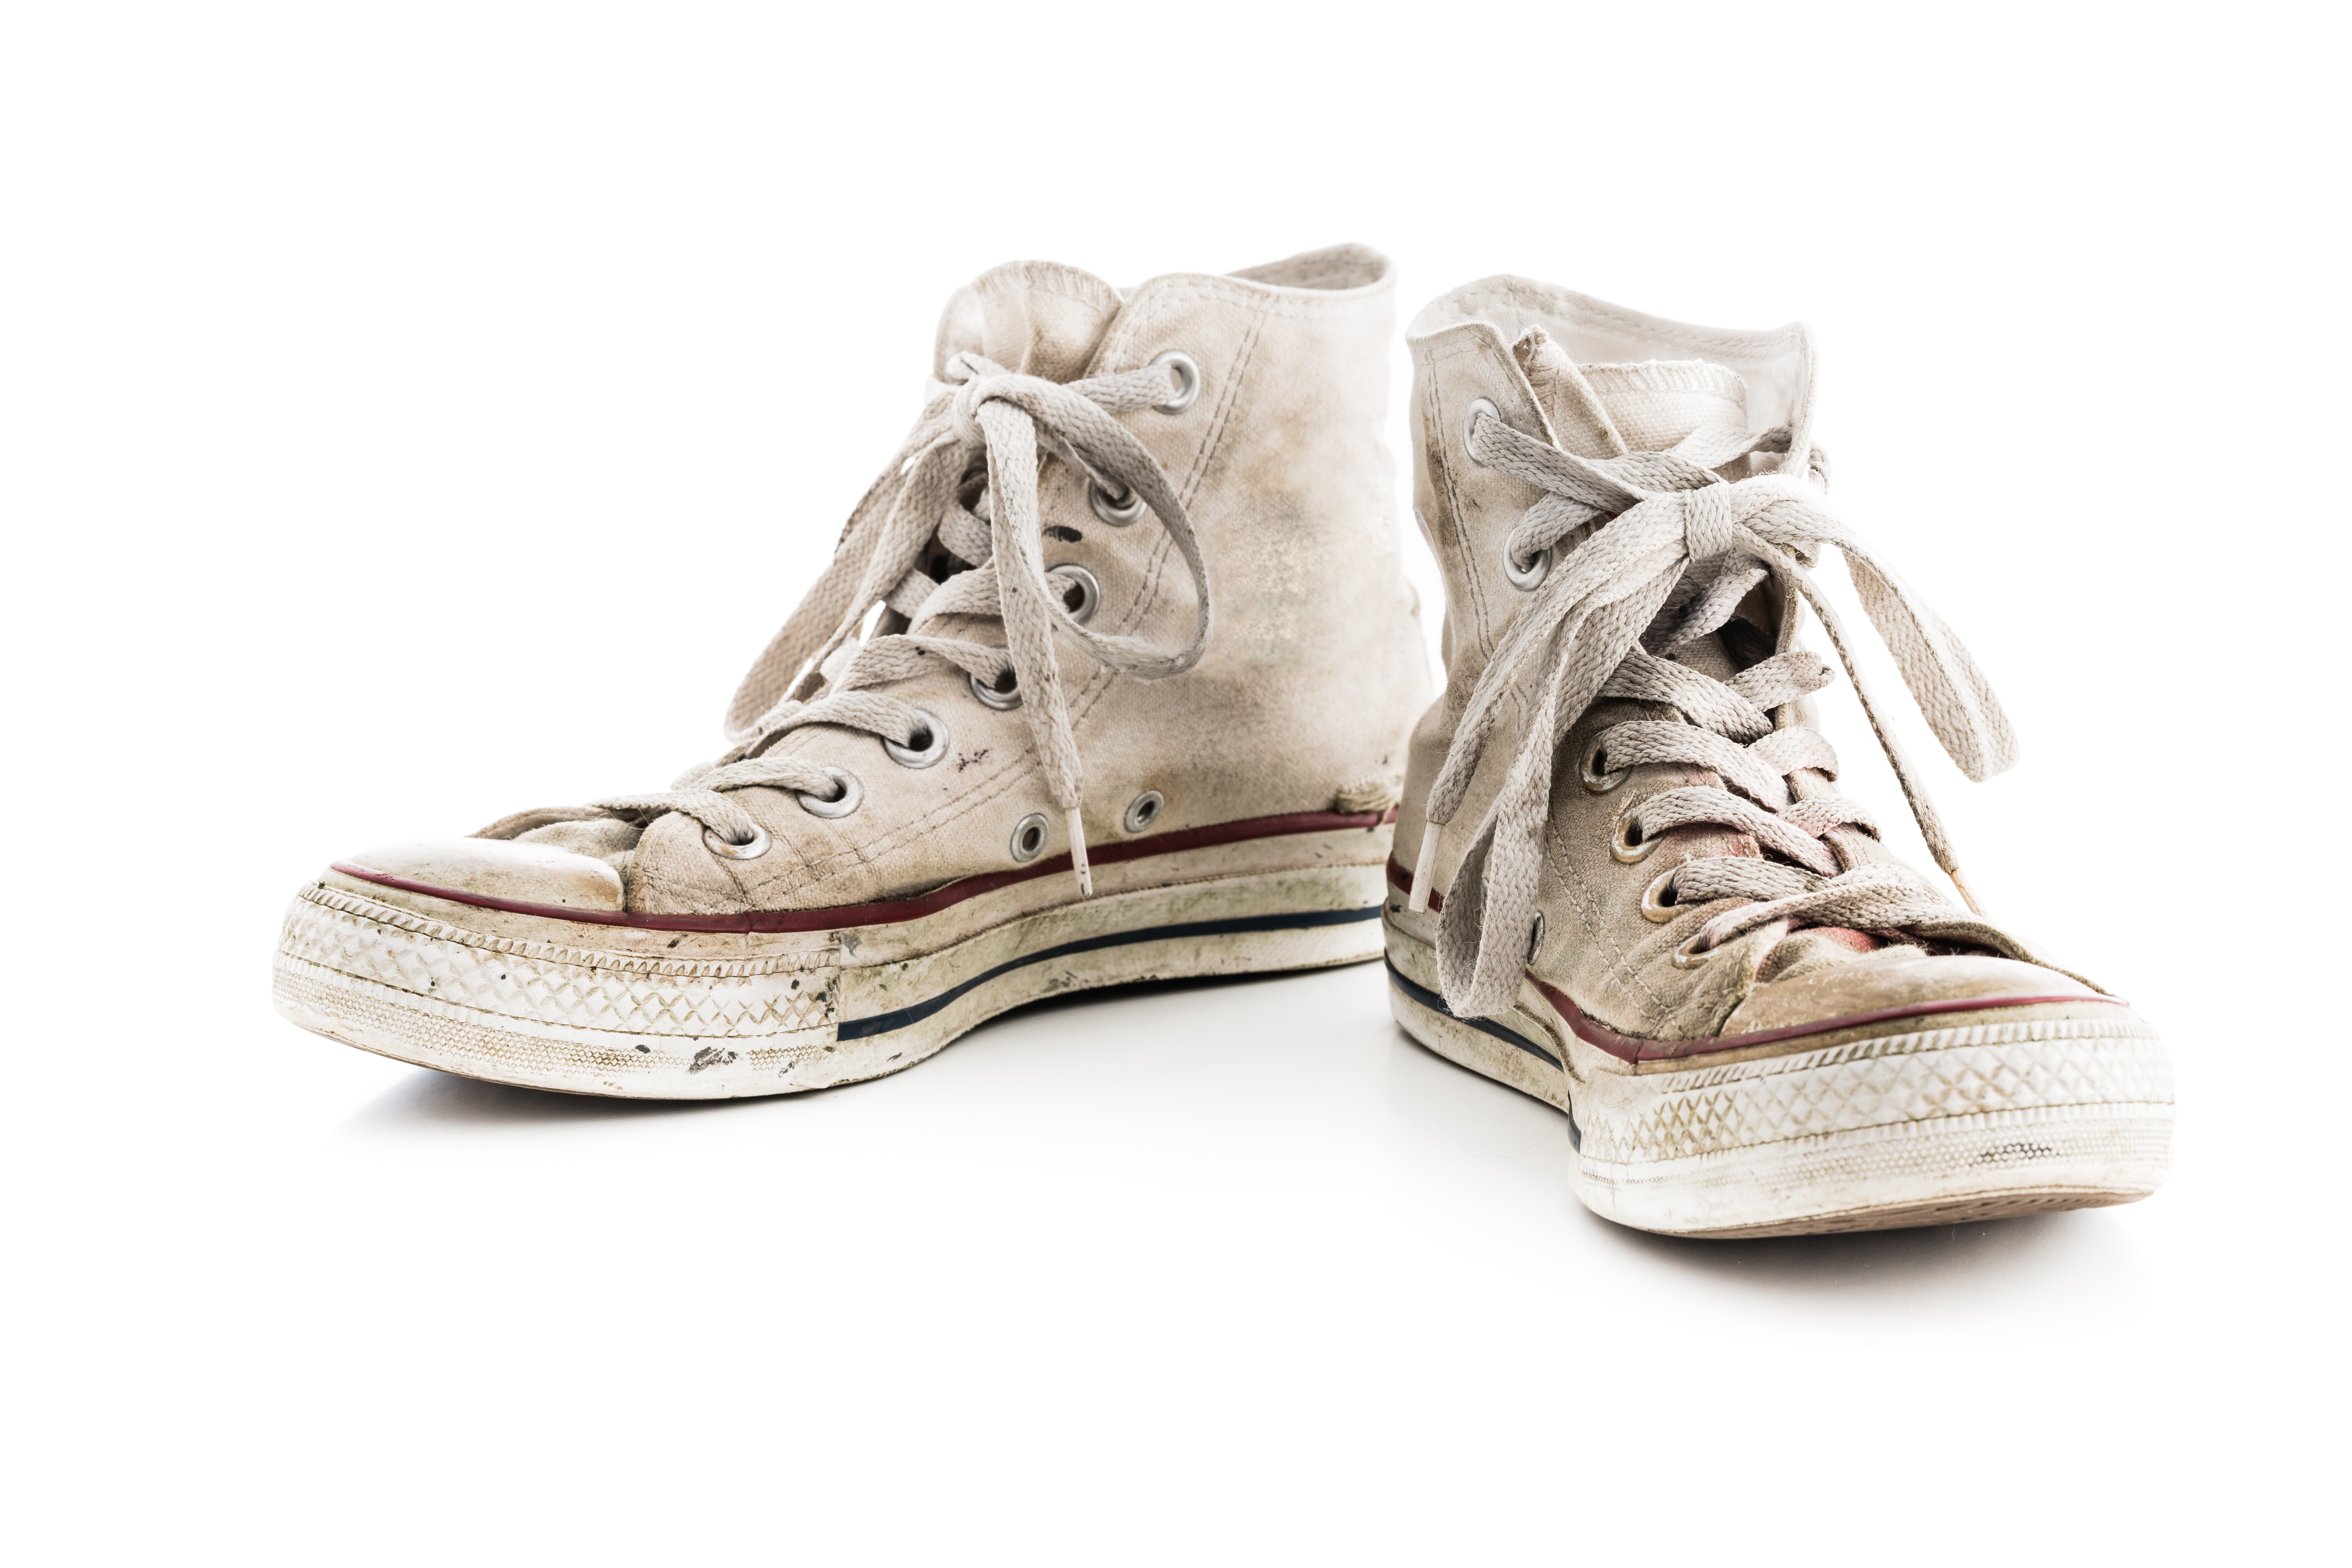 How to Clean White Shoes - The